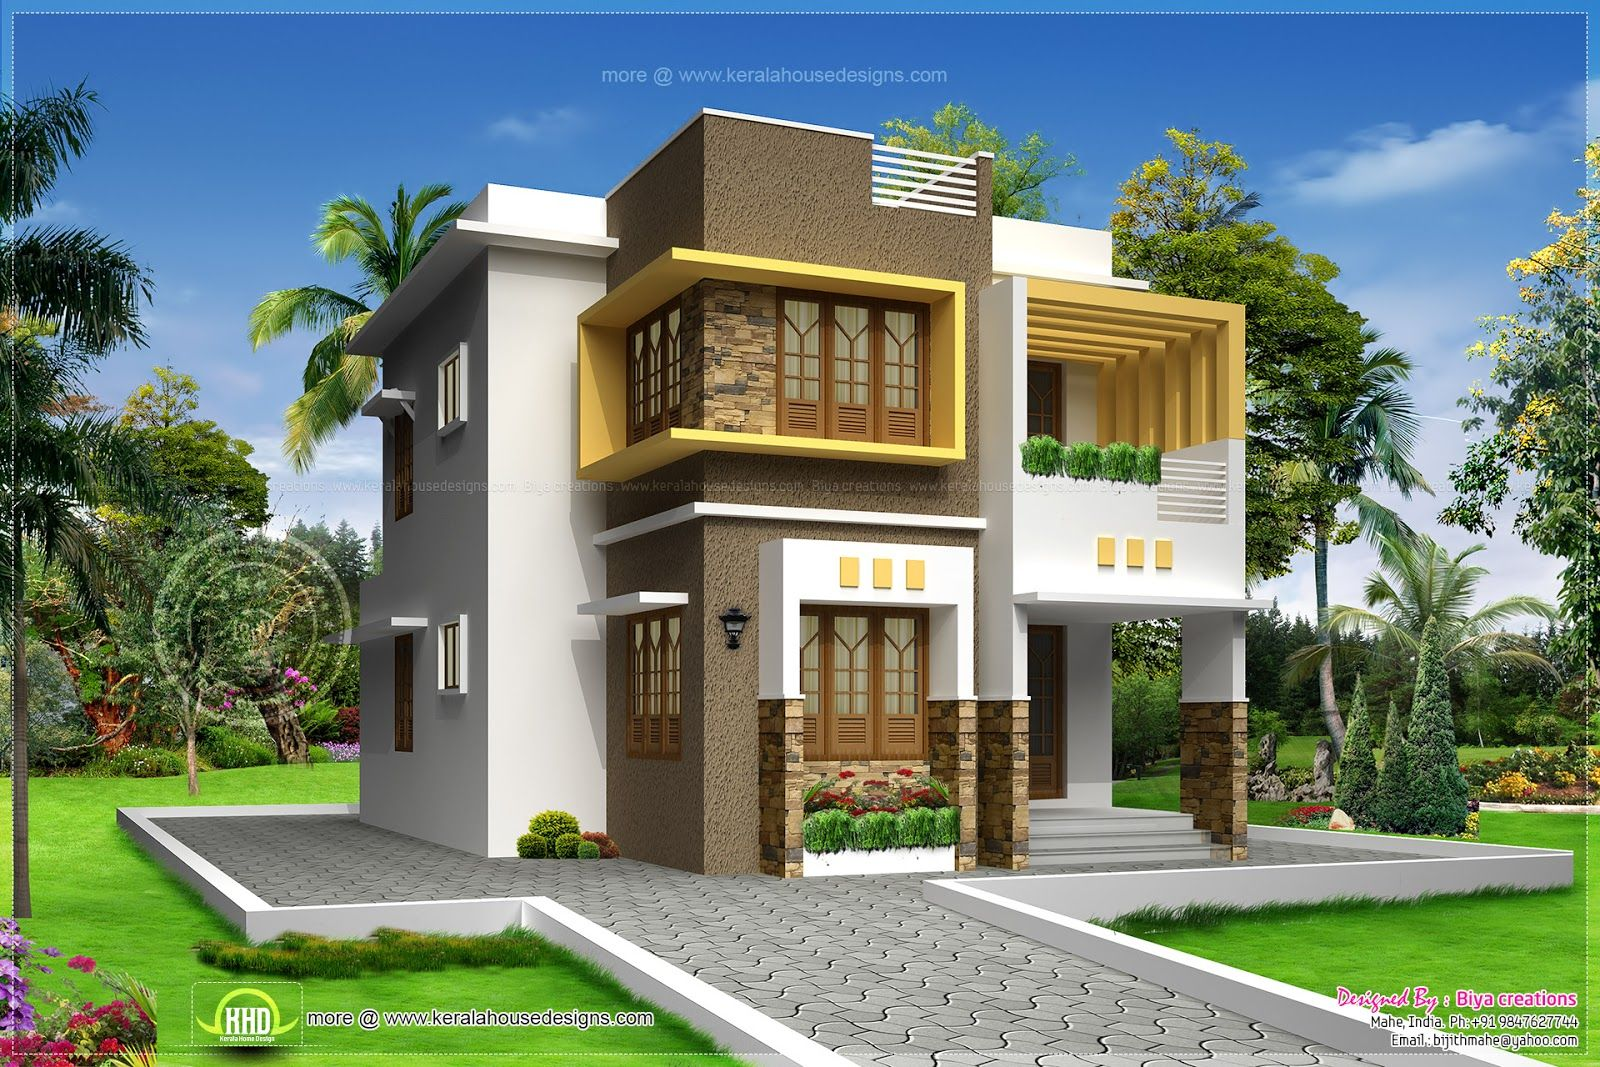 Modern House Design India Html on the most beautiful place in the world india, fashion india, garden design india, housing design india, modern house plan, modern art india, bedroom design india, architecture india, modern furniture india, kitchen design india, interior decorating ideas india, modern living room designs india, bathroom designs india, modern architectural designs hotels, villa design india, traditional indian henna pattern india, modern house elevation designs, bungalow house plans india, modern traditional design, bathroom vanities india,